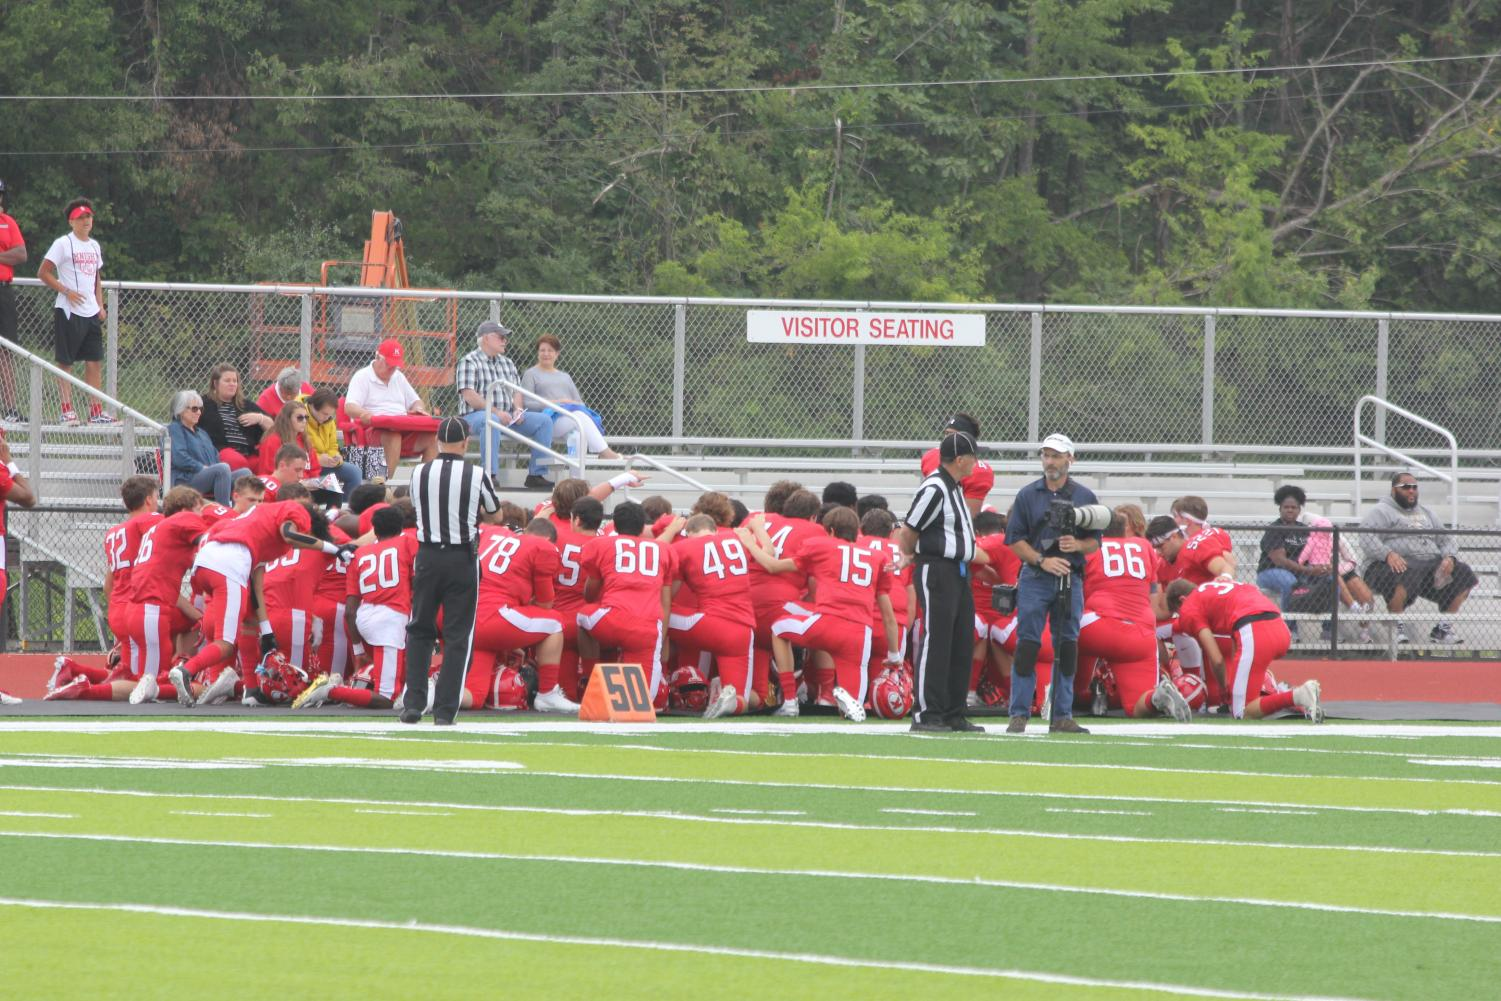 The+Pioneers+kneel+in+a+huddle+before+the+game.